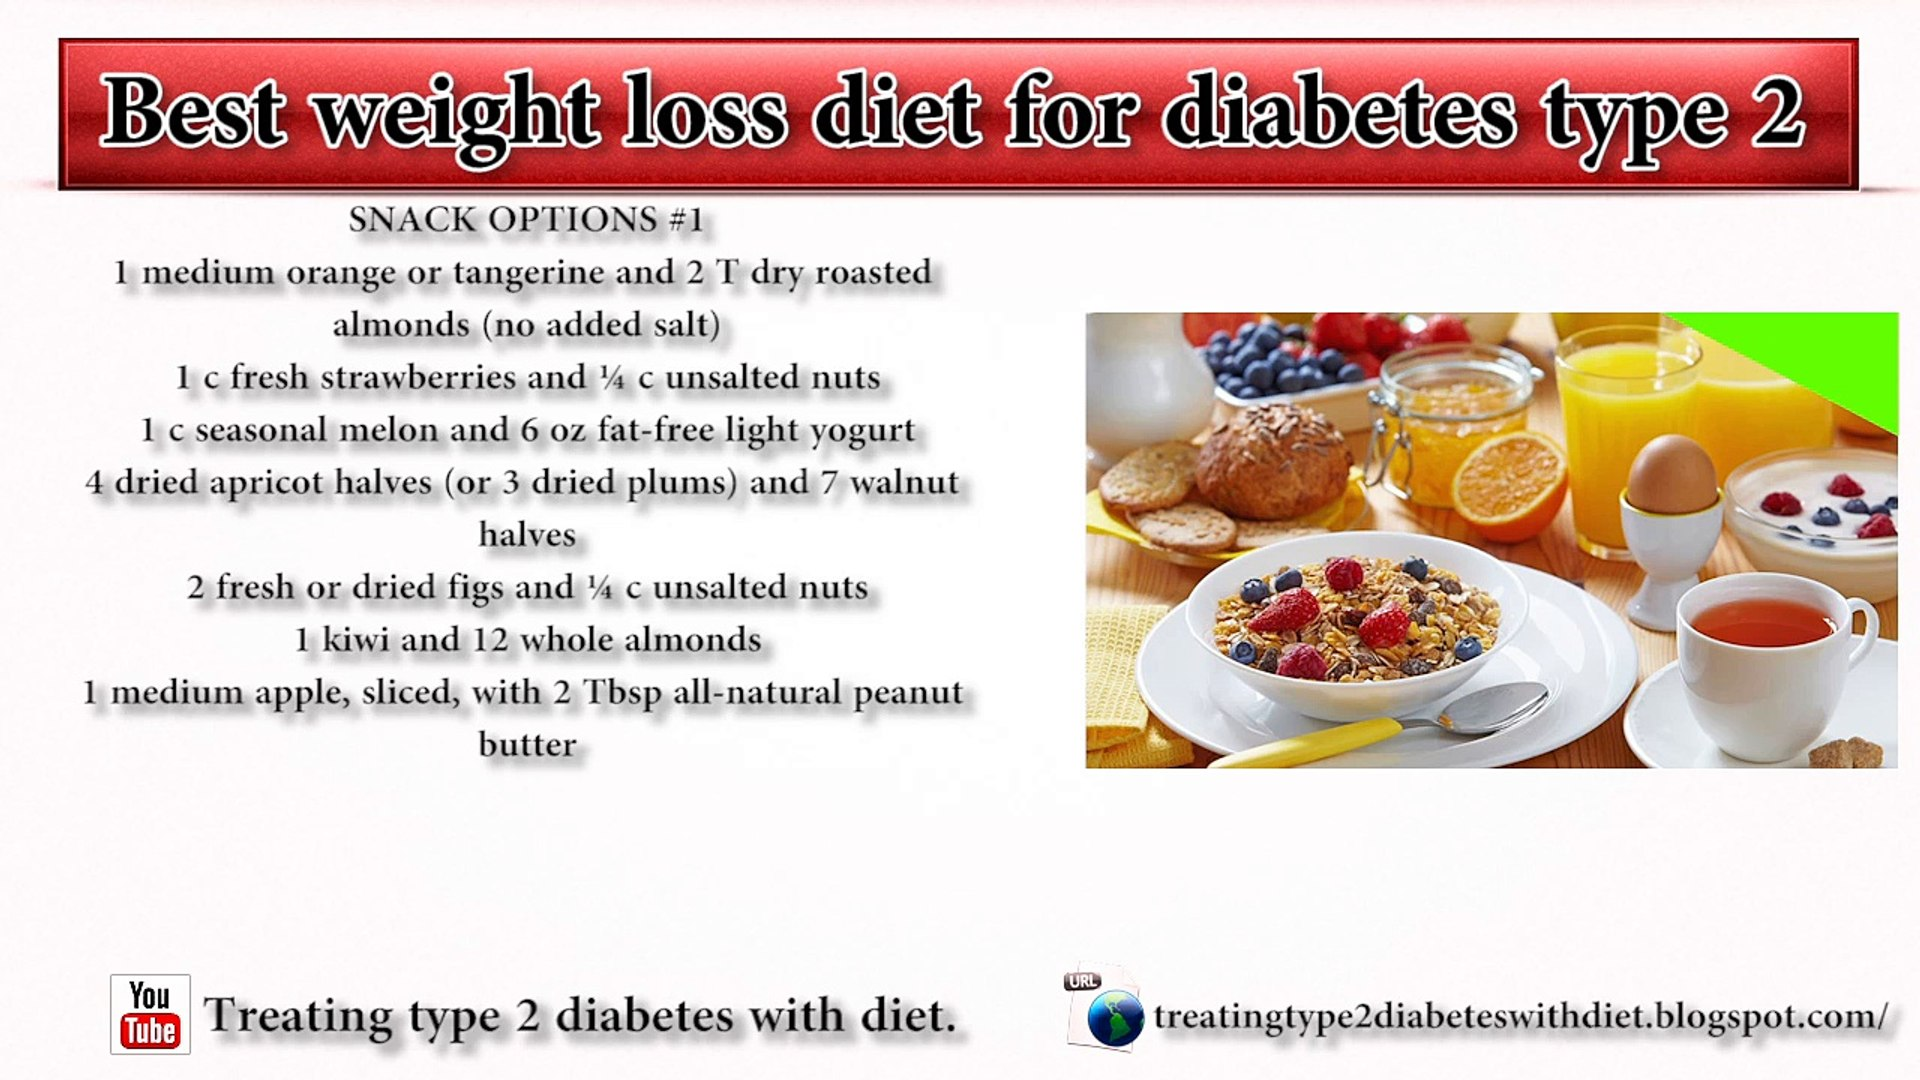 best weight loss diet for diabetes type 2